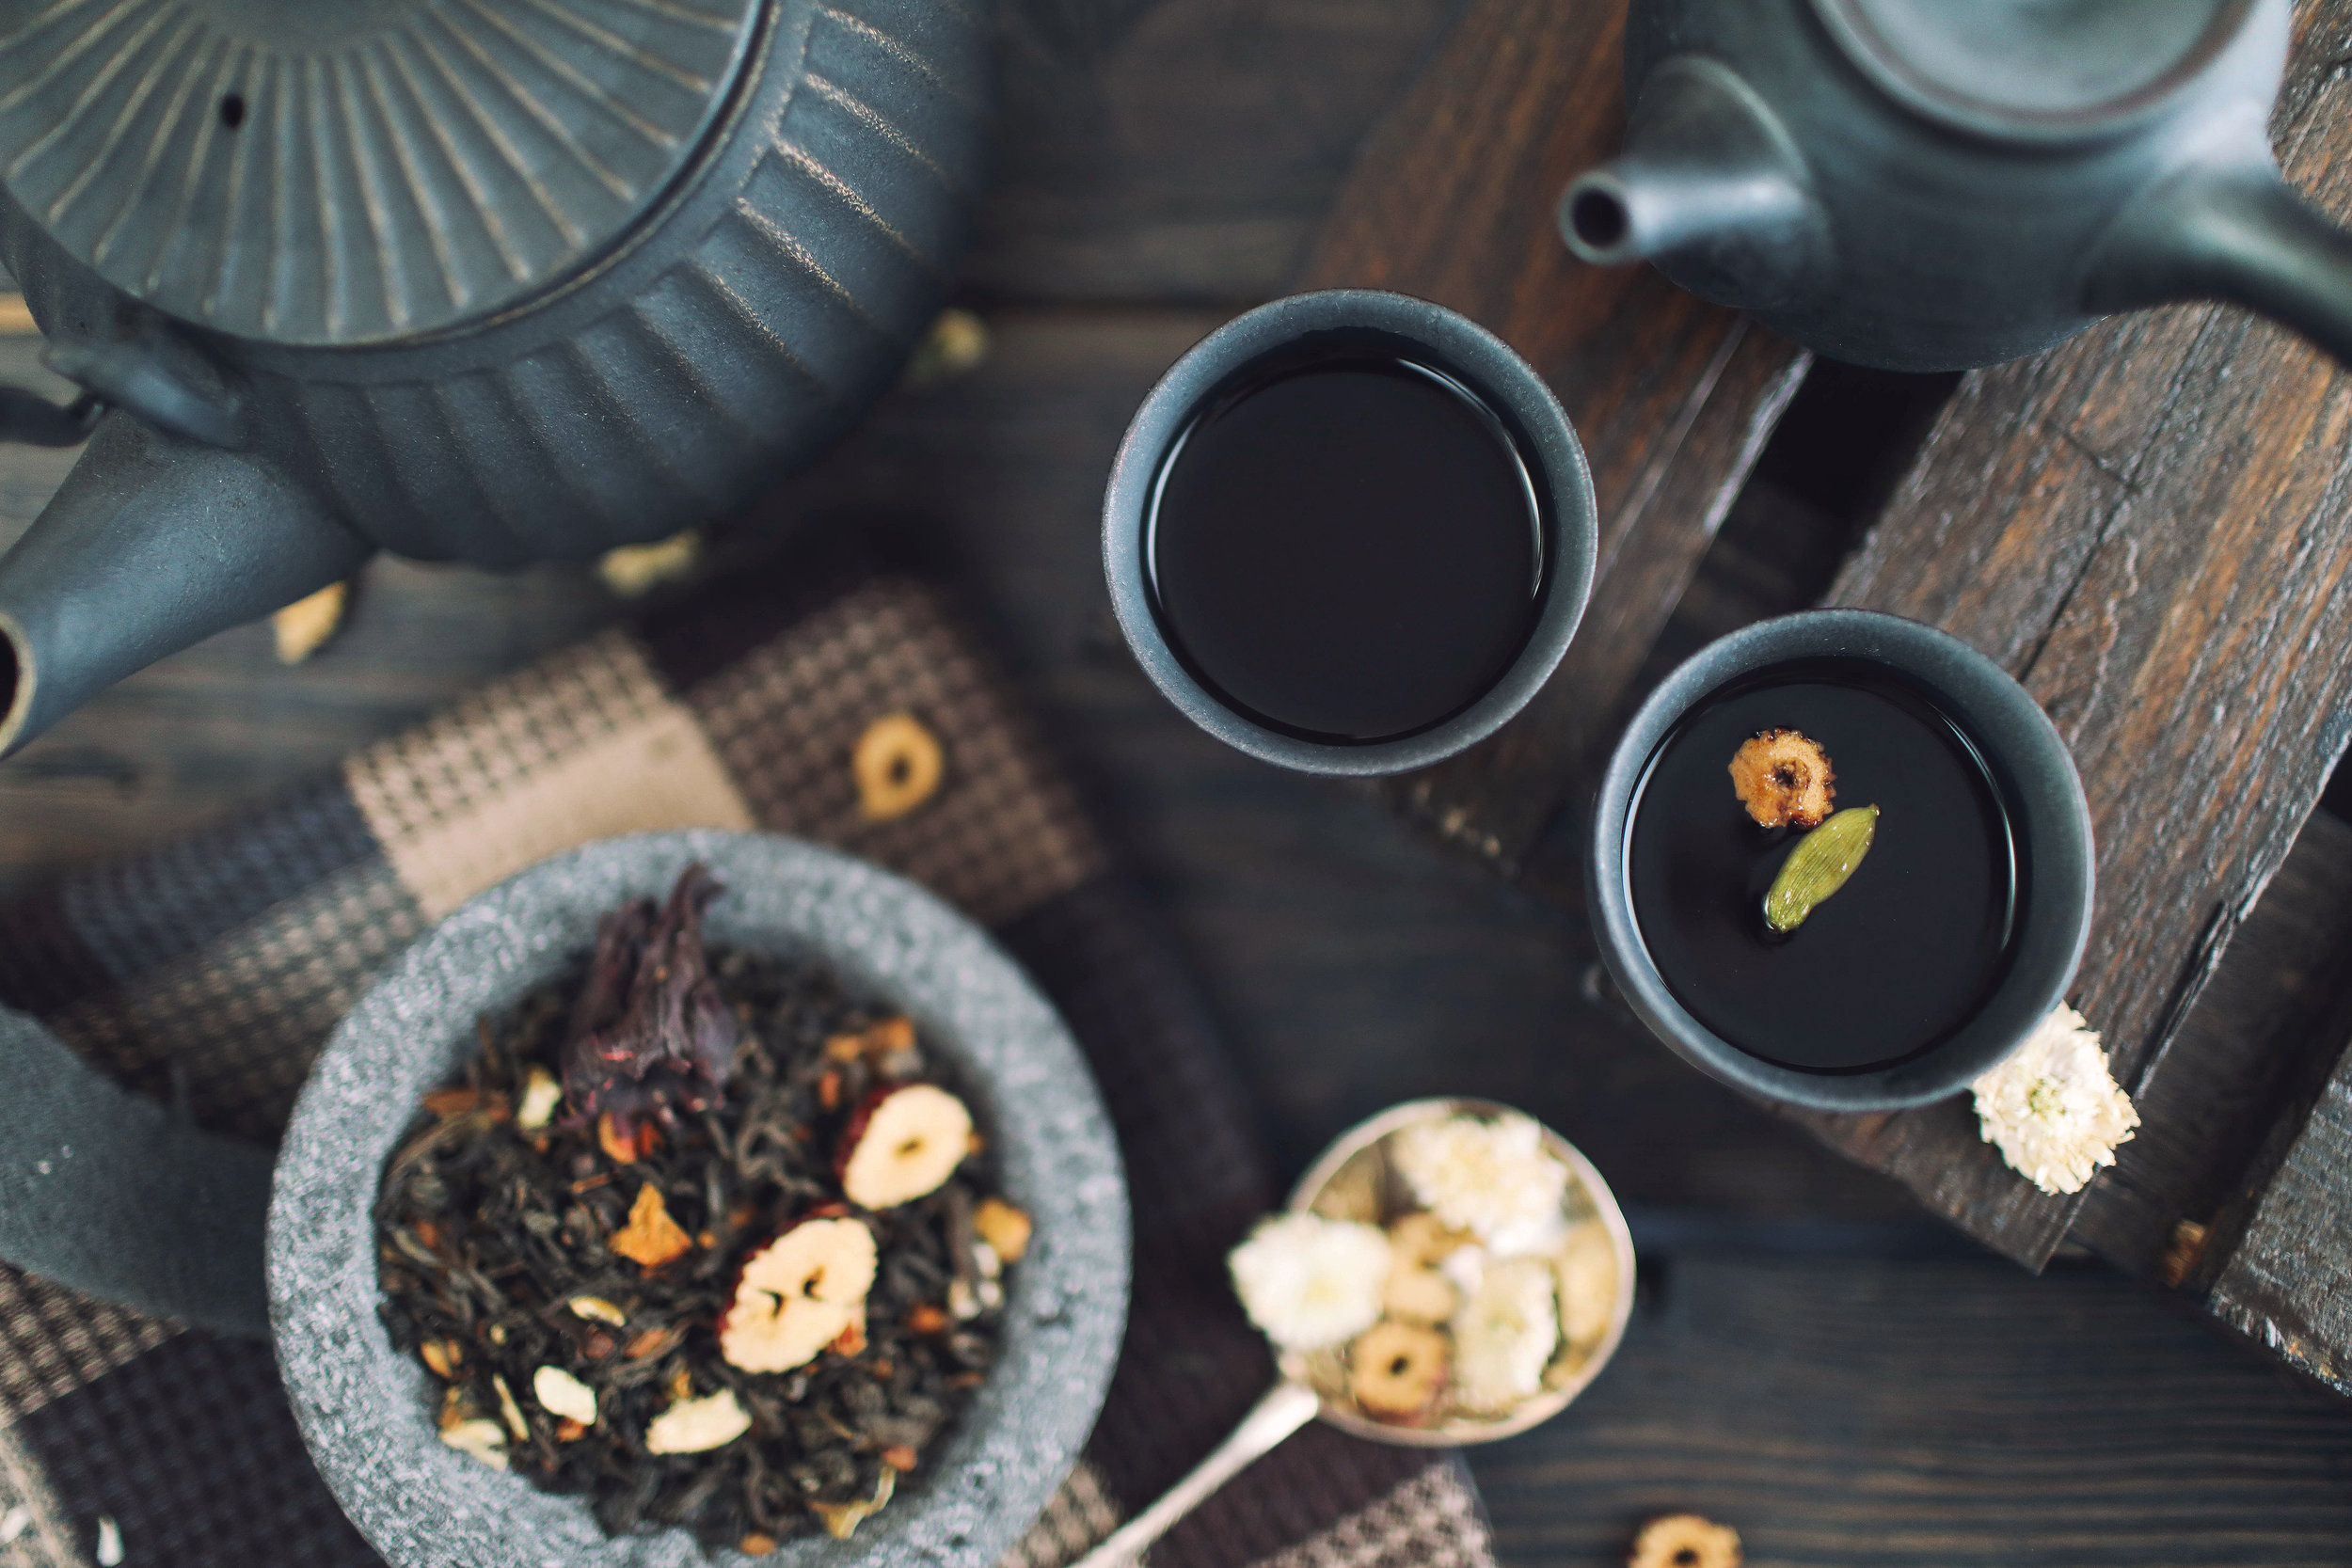 Discover the French art of aromatized teas and bring the taste of Paris into your tea business!